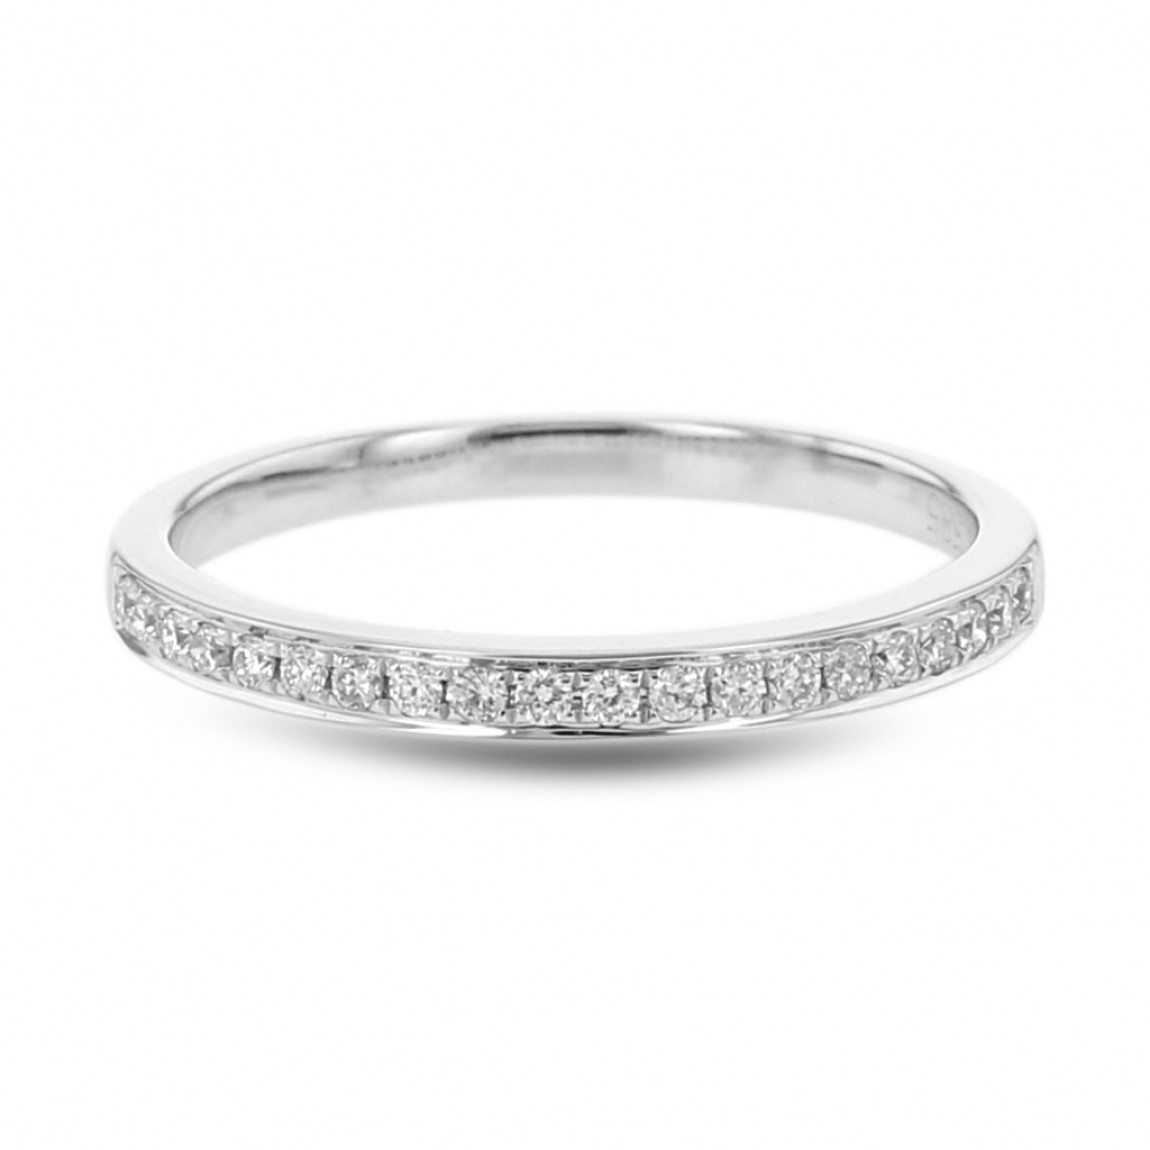 Diamond Wedding Anniversary Band, Pave Half Eternity Ring, 14K White Gold,   (View 15 of 25)